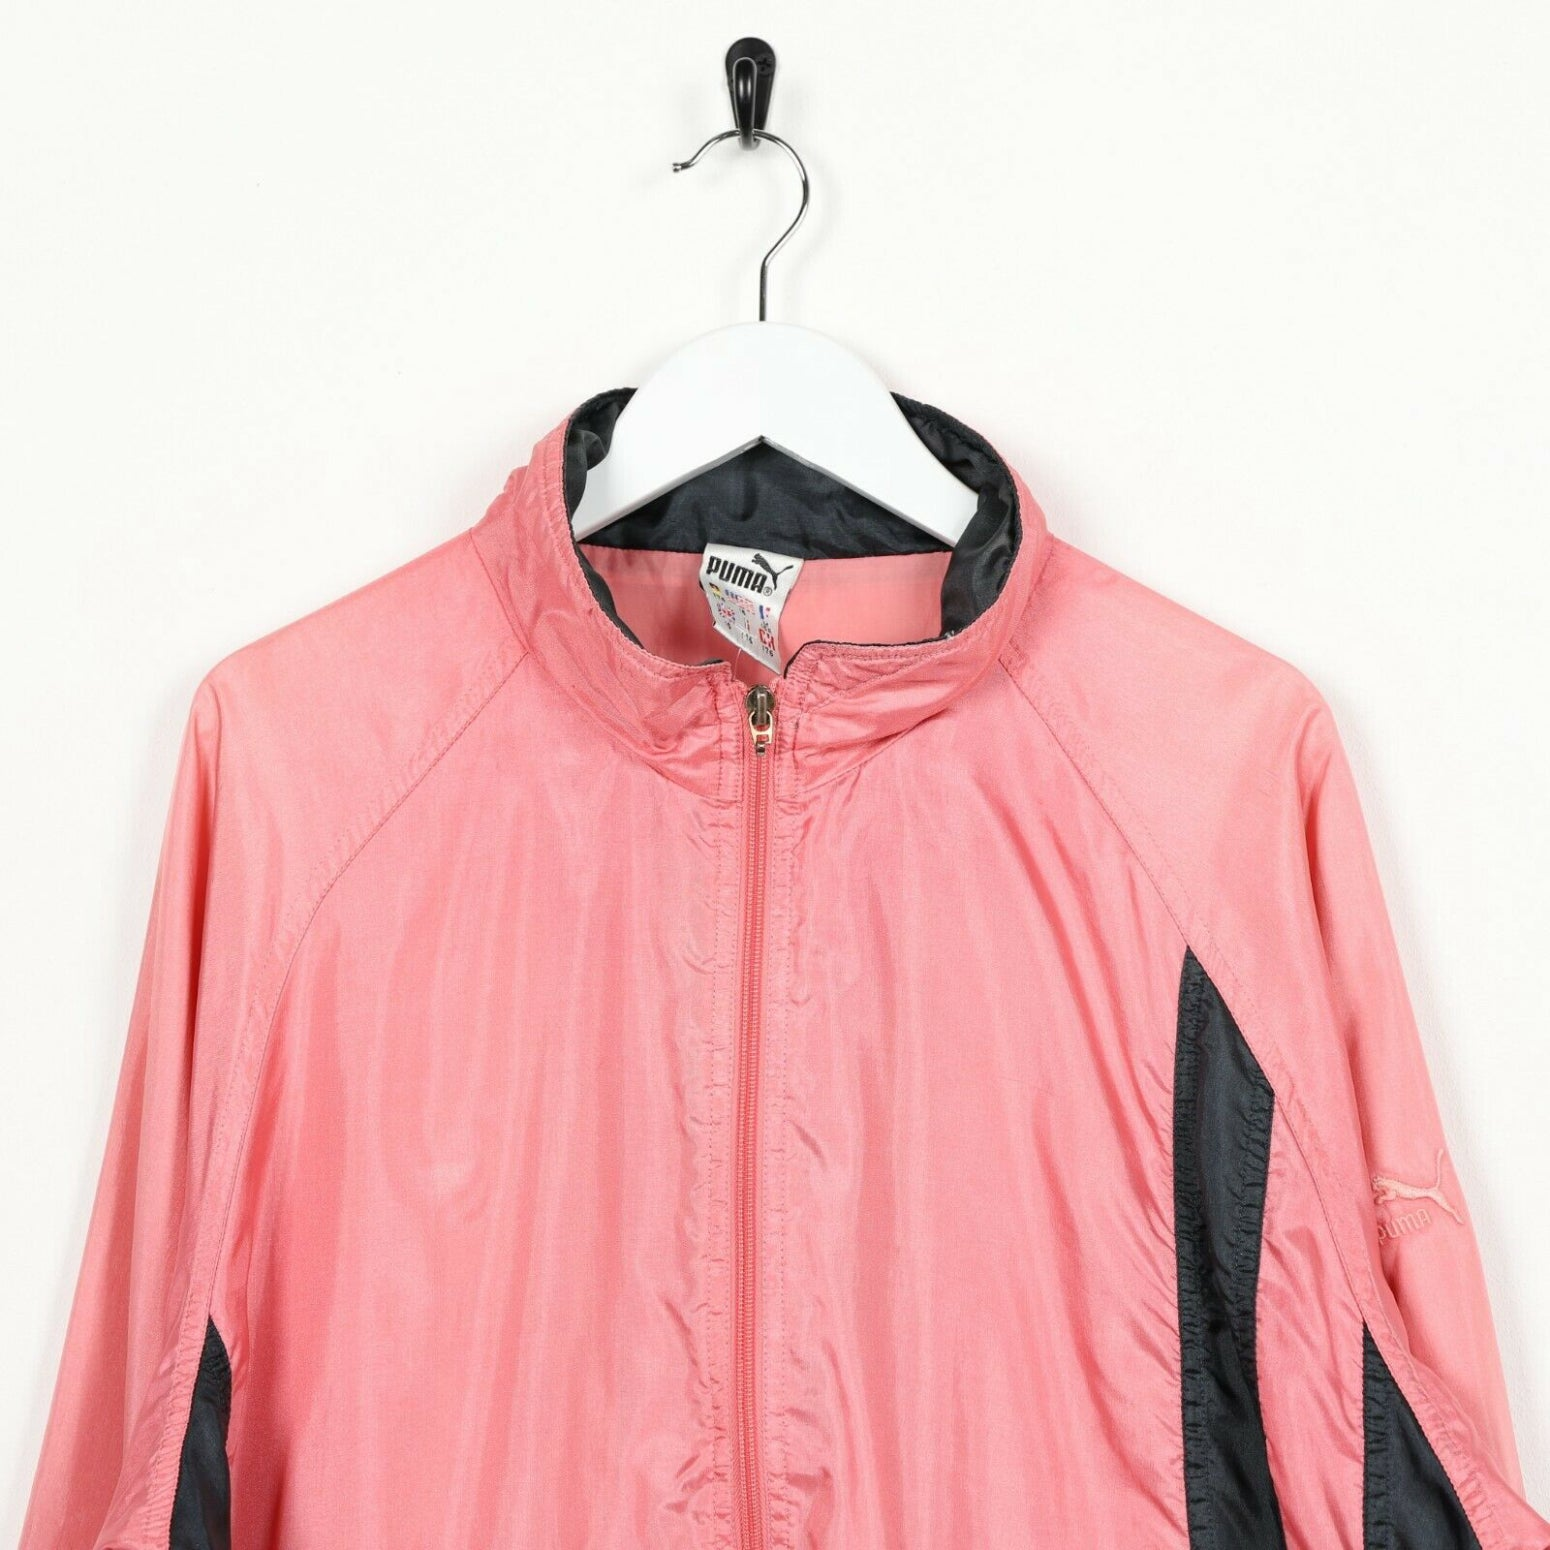 Vintage 90s Women's PUMA Soft Shell Festival Windbreaker Jacket Pink | UK 10